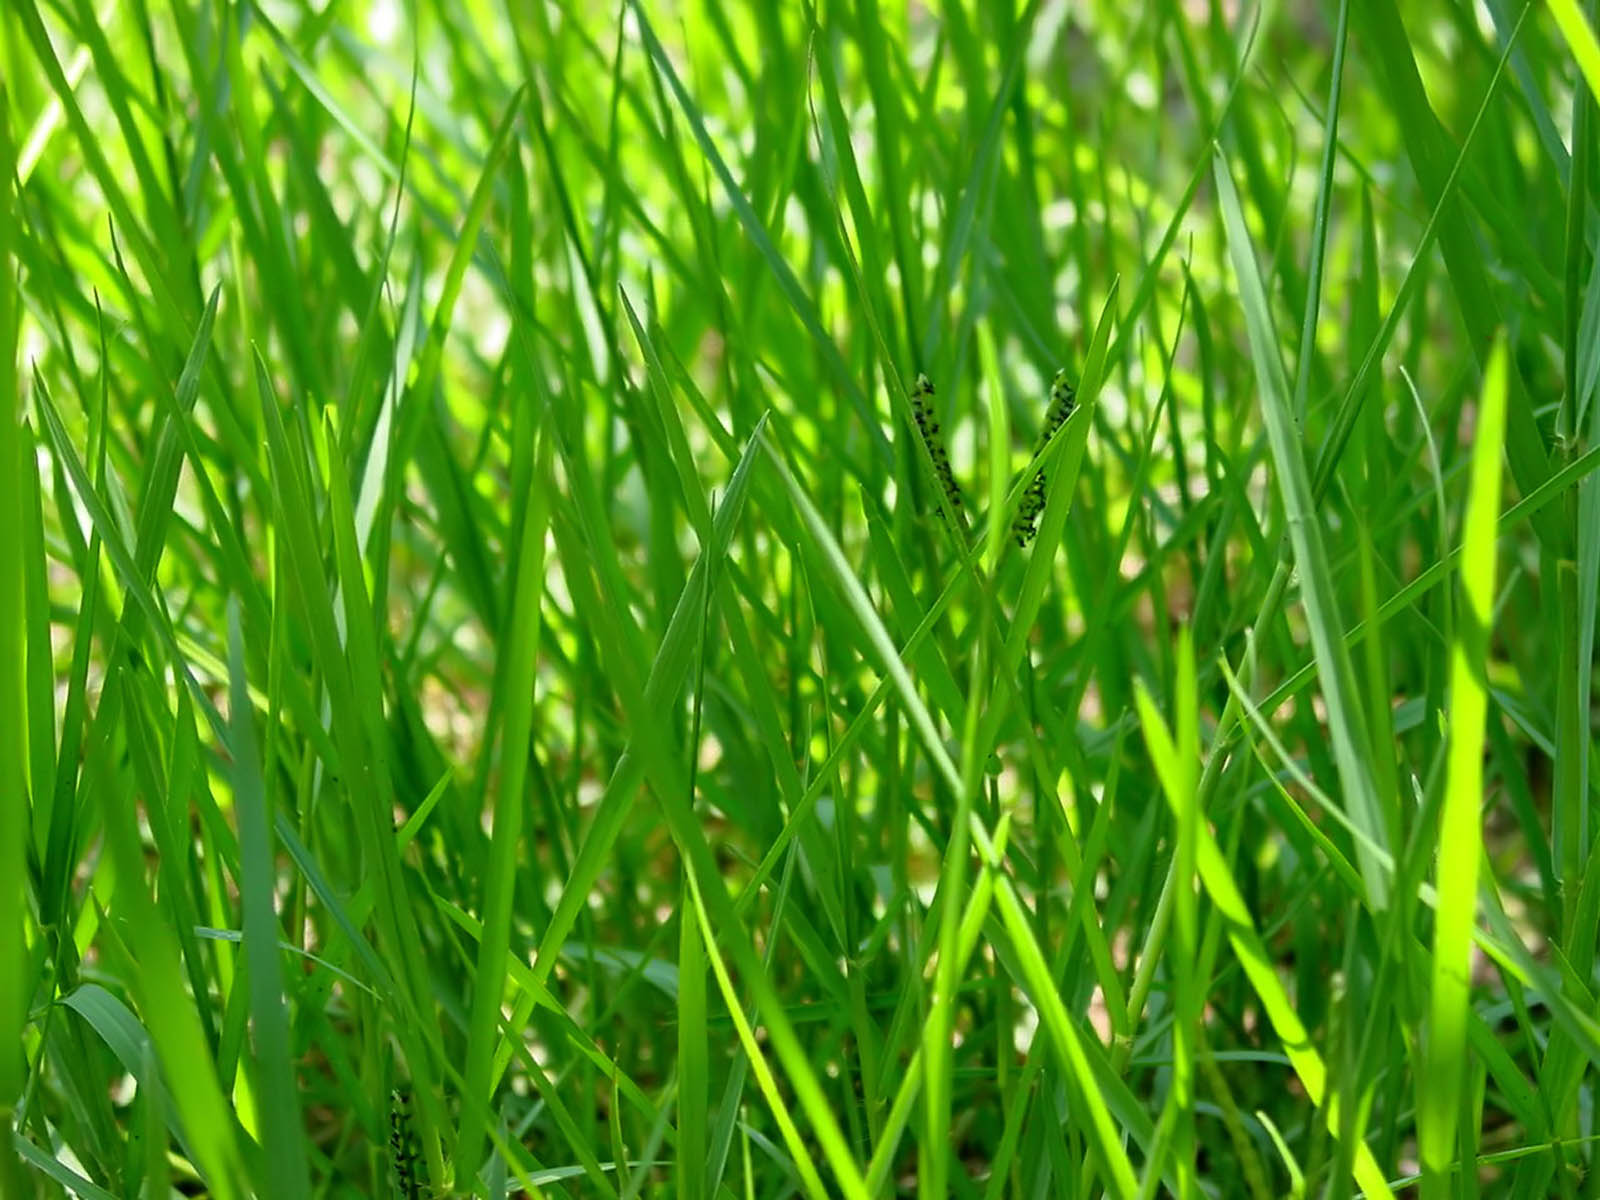 Contact - image green-grass-subheader-1 on http://acupuncturerichmond.com.au